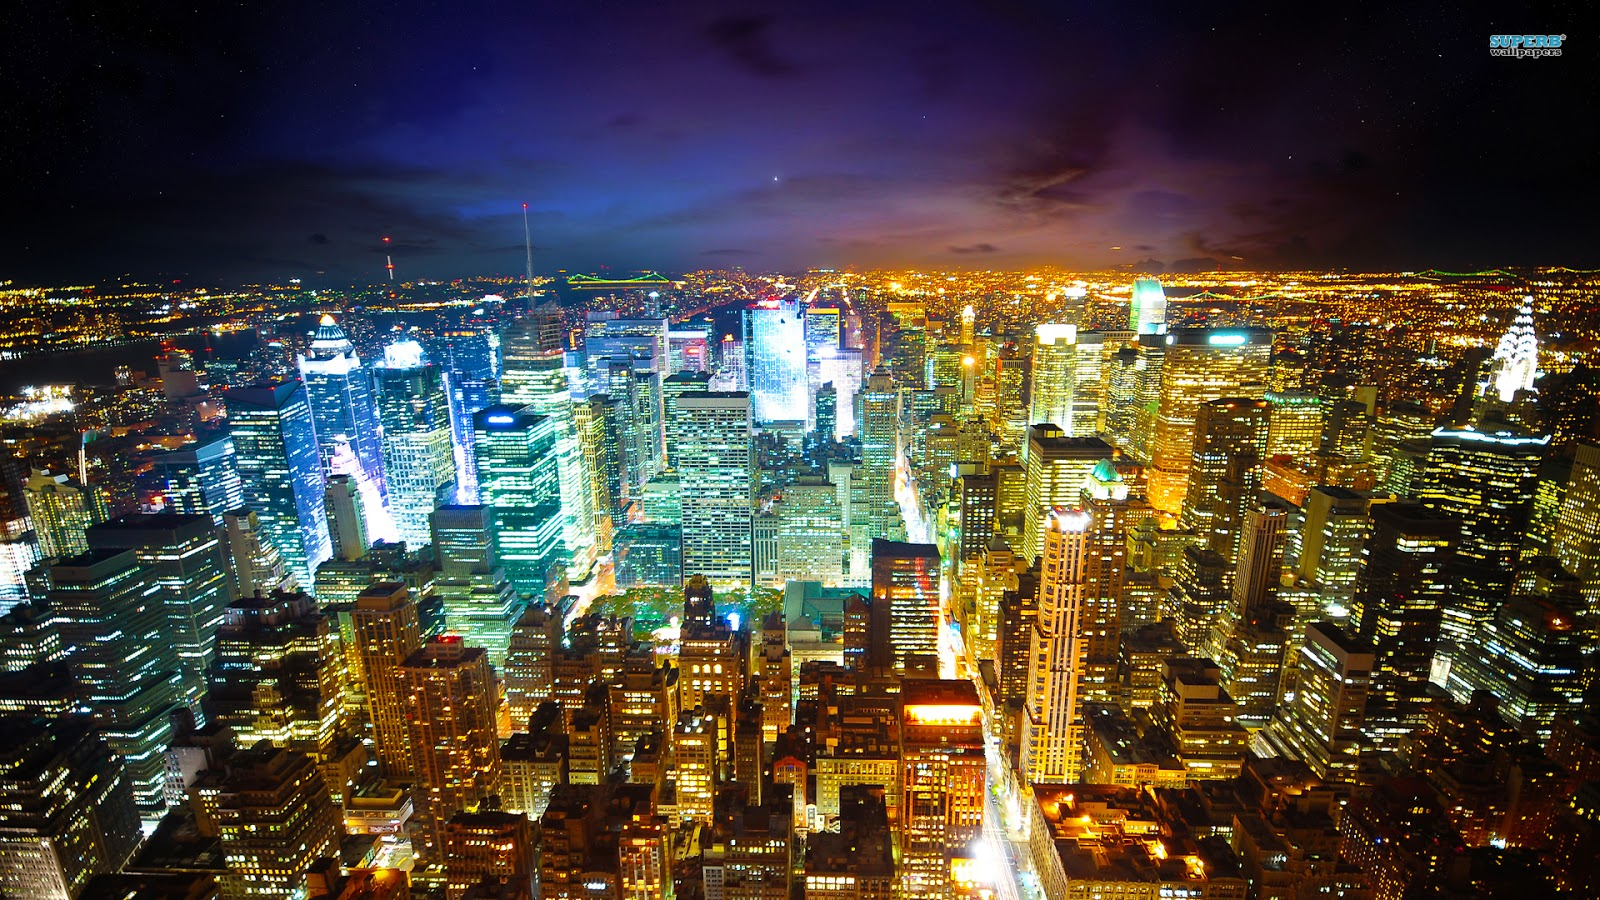 hdwallpaperspackin New York City HD Wallpapers Download 1080p 1600x900